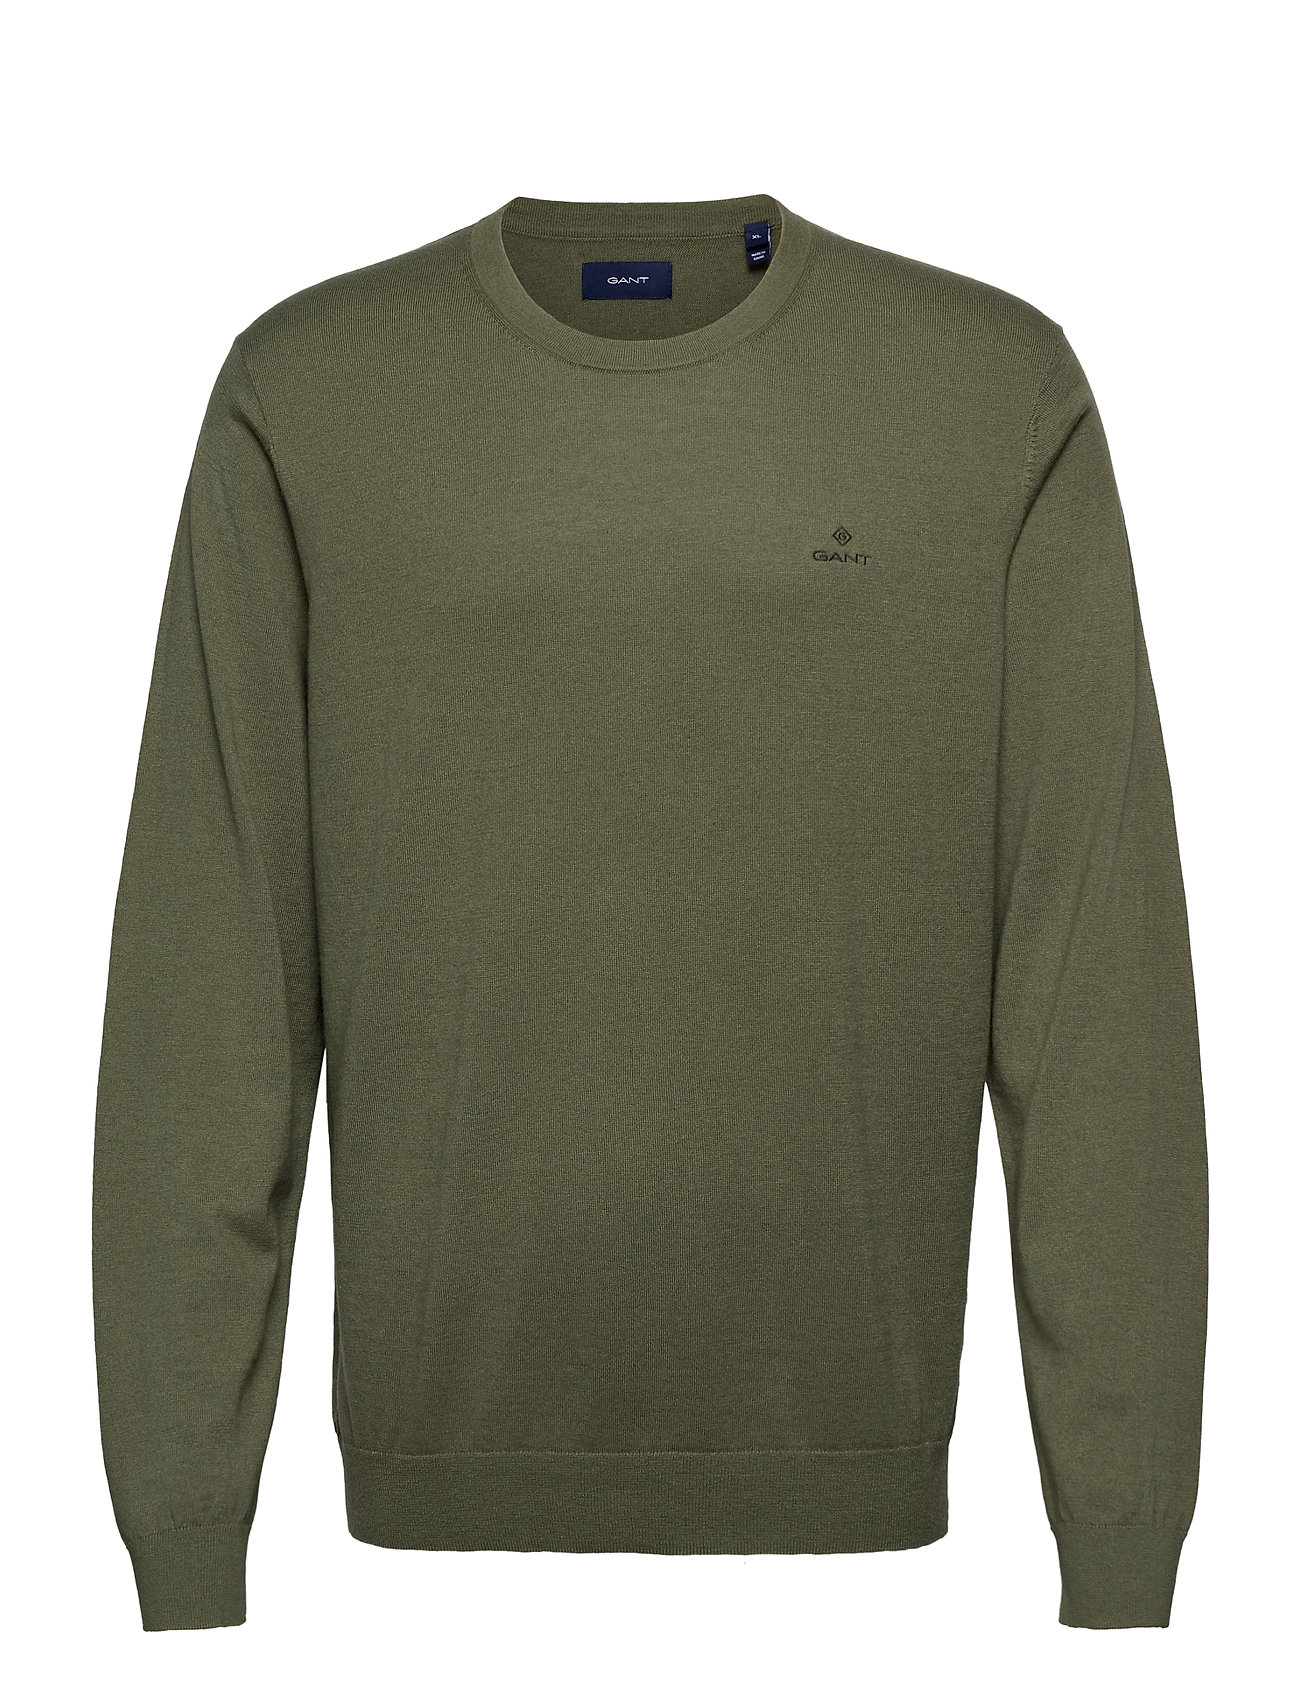 GANT D1. COTTON CASHMERE C-NECK - FOUR LEAF CLOVER